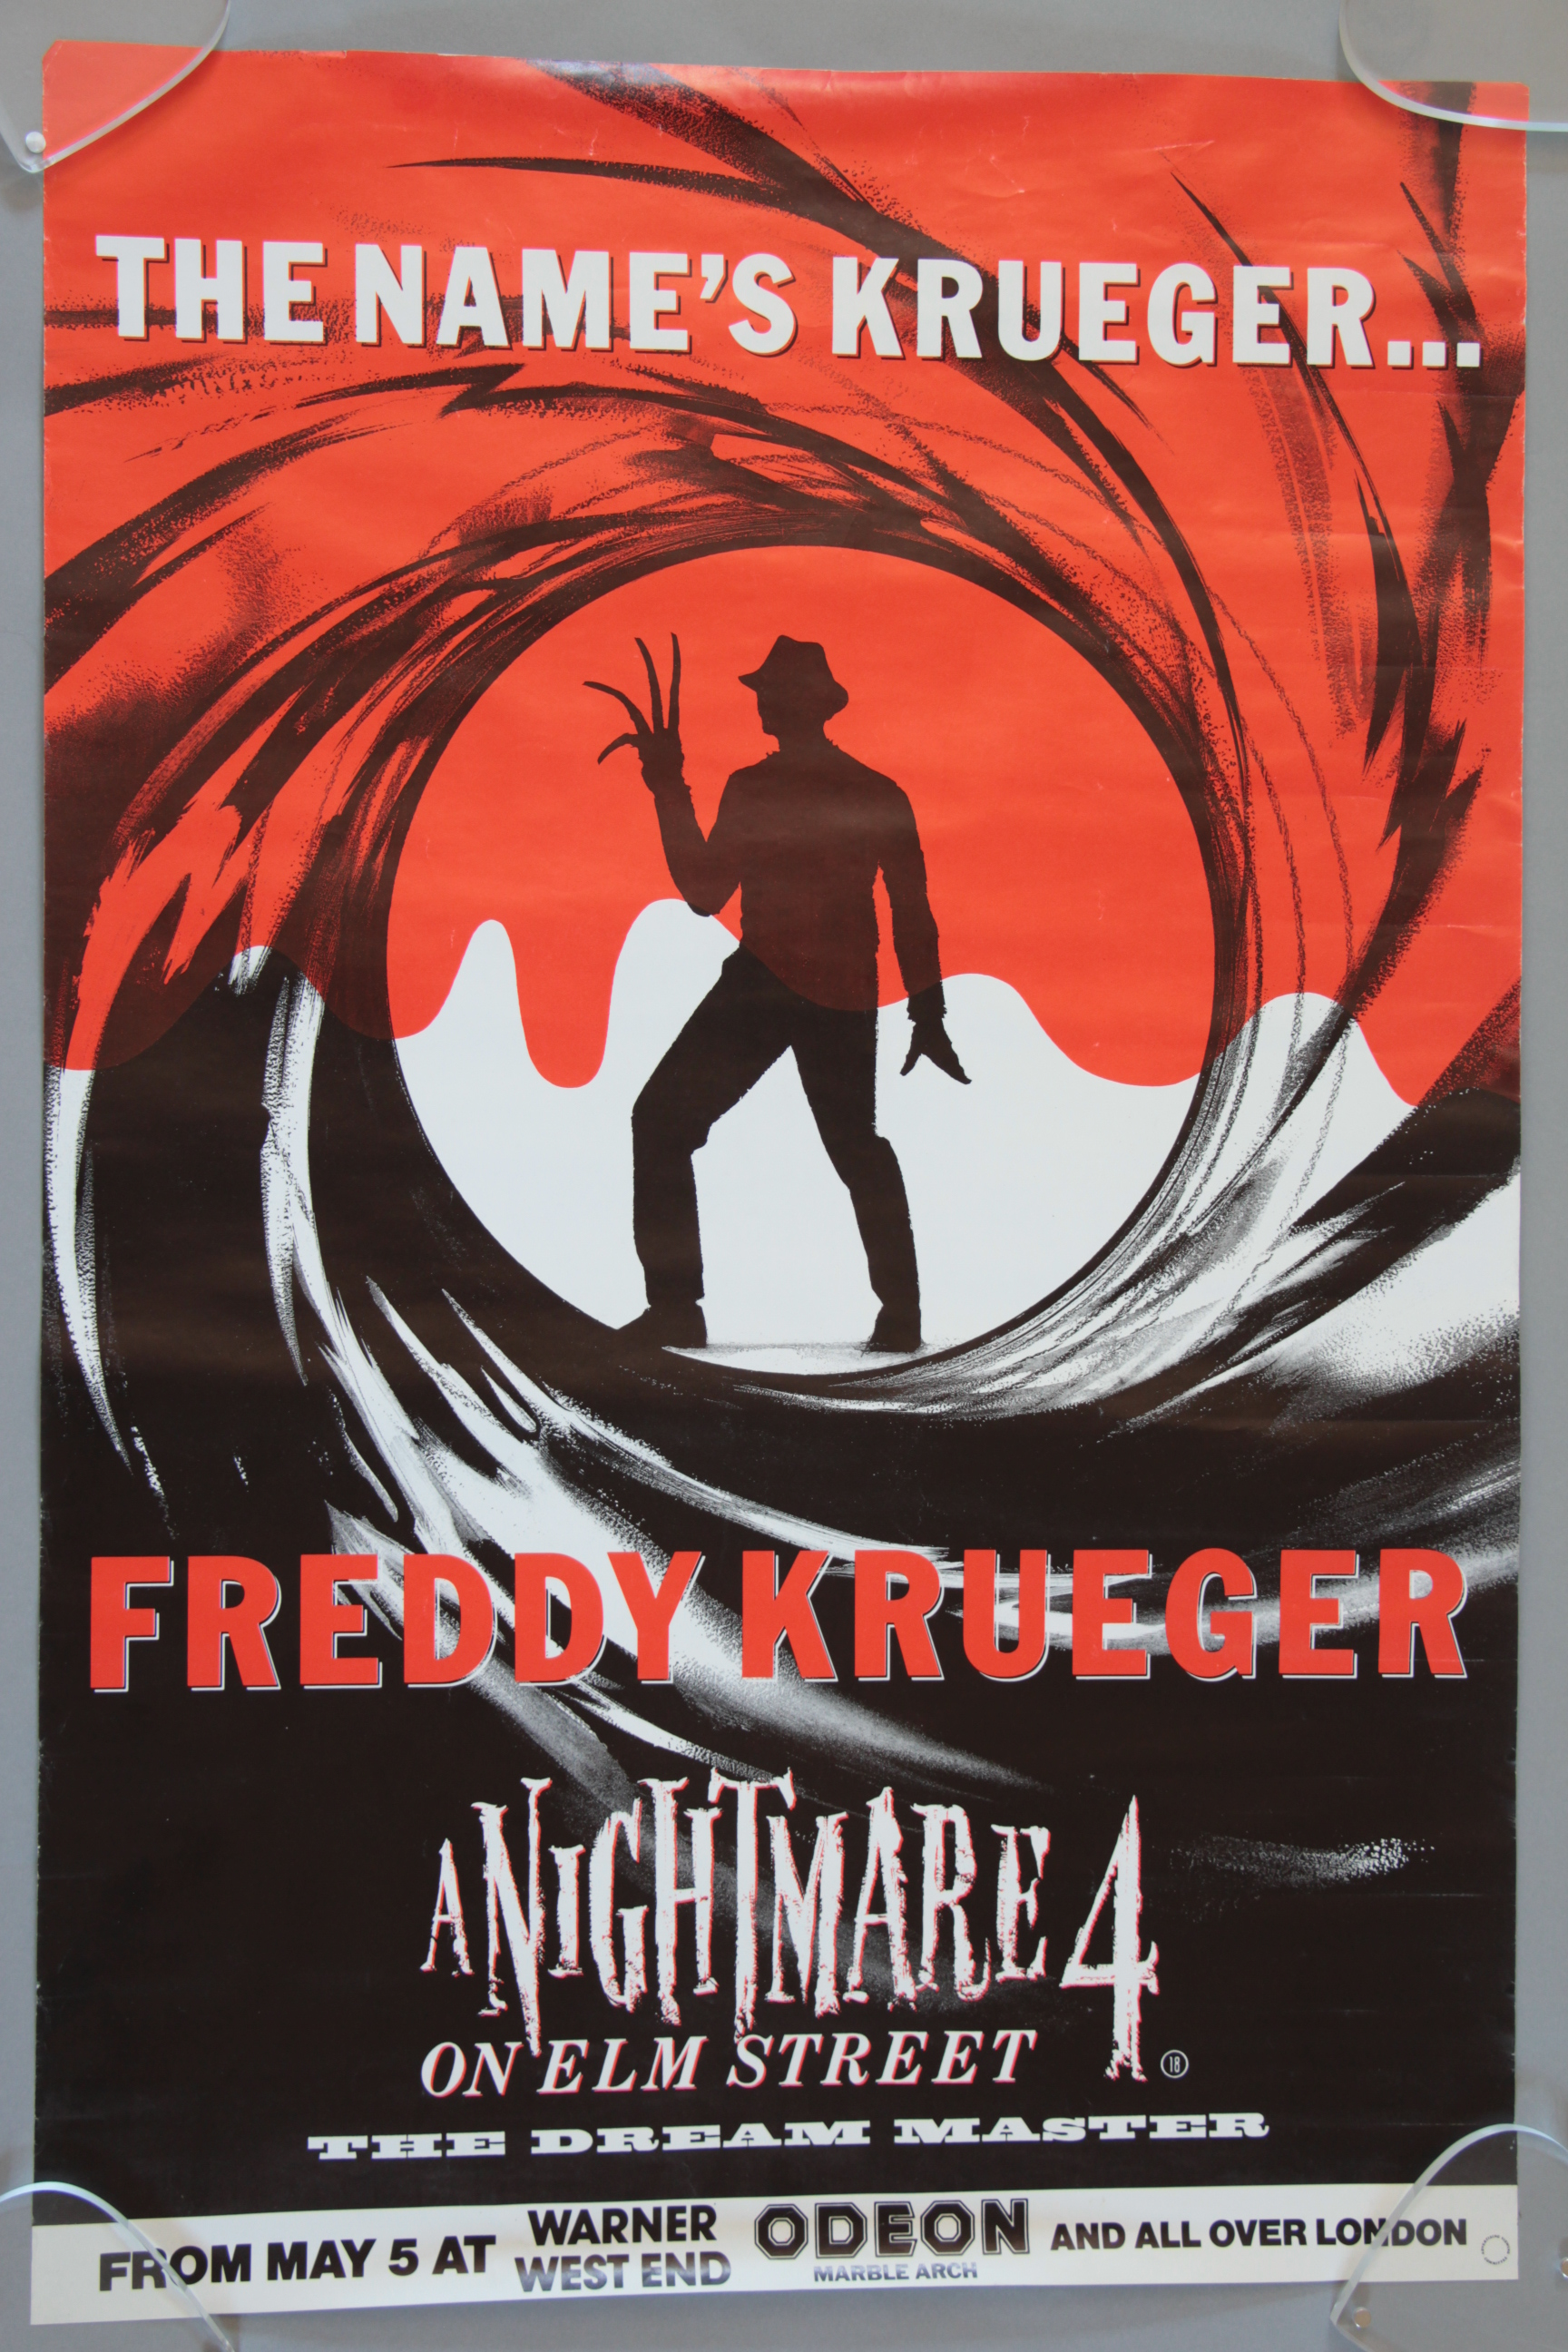 Lot 41 - A Nightmare on Elm Street 4 Freddy Krueger as James Bond style rolled Excellent condition British